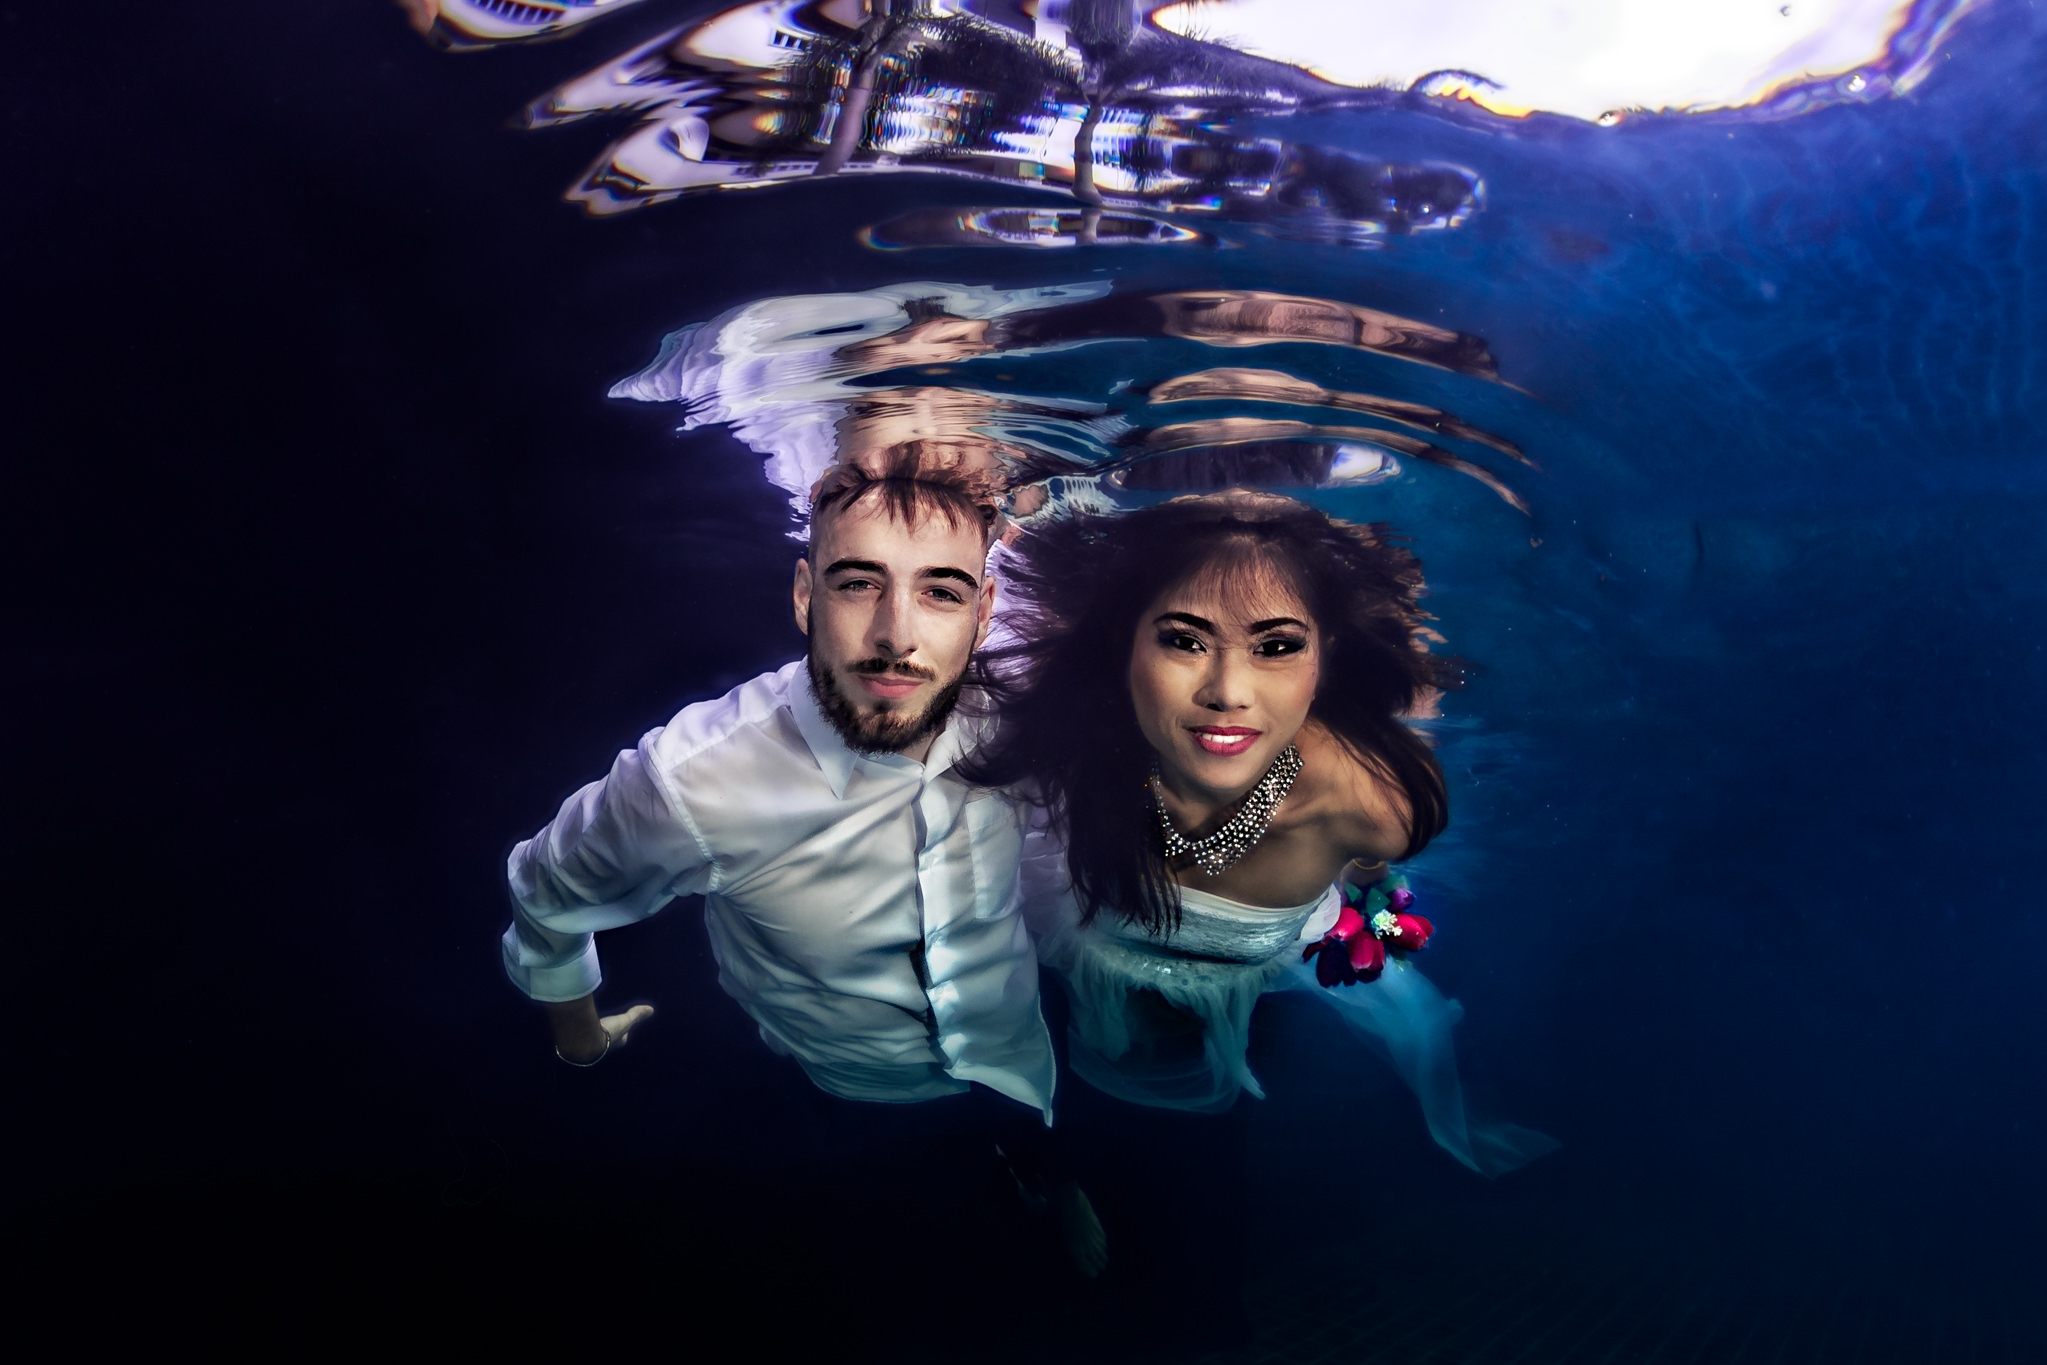 Underwater wedding photography in Koh Samui